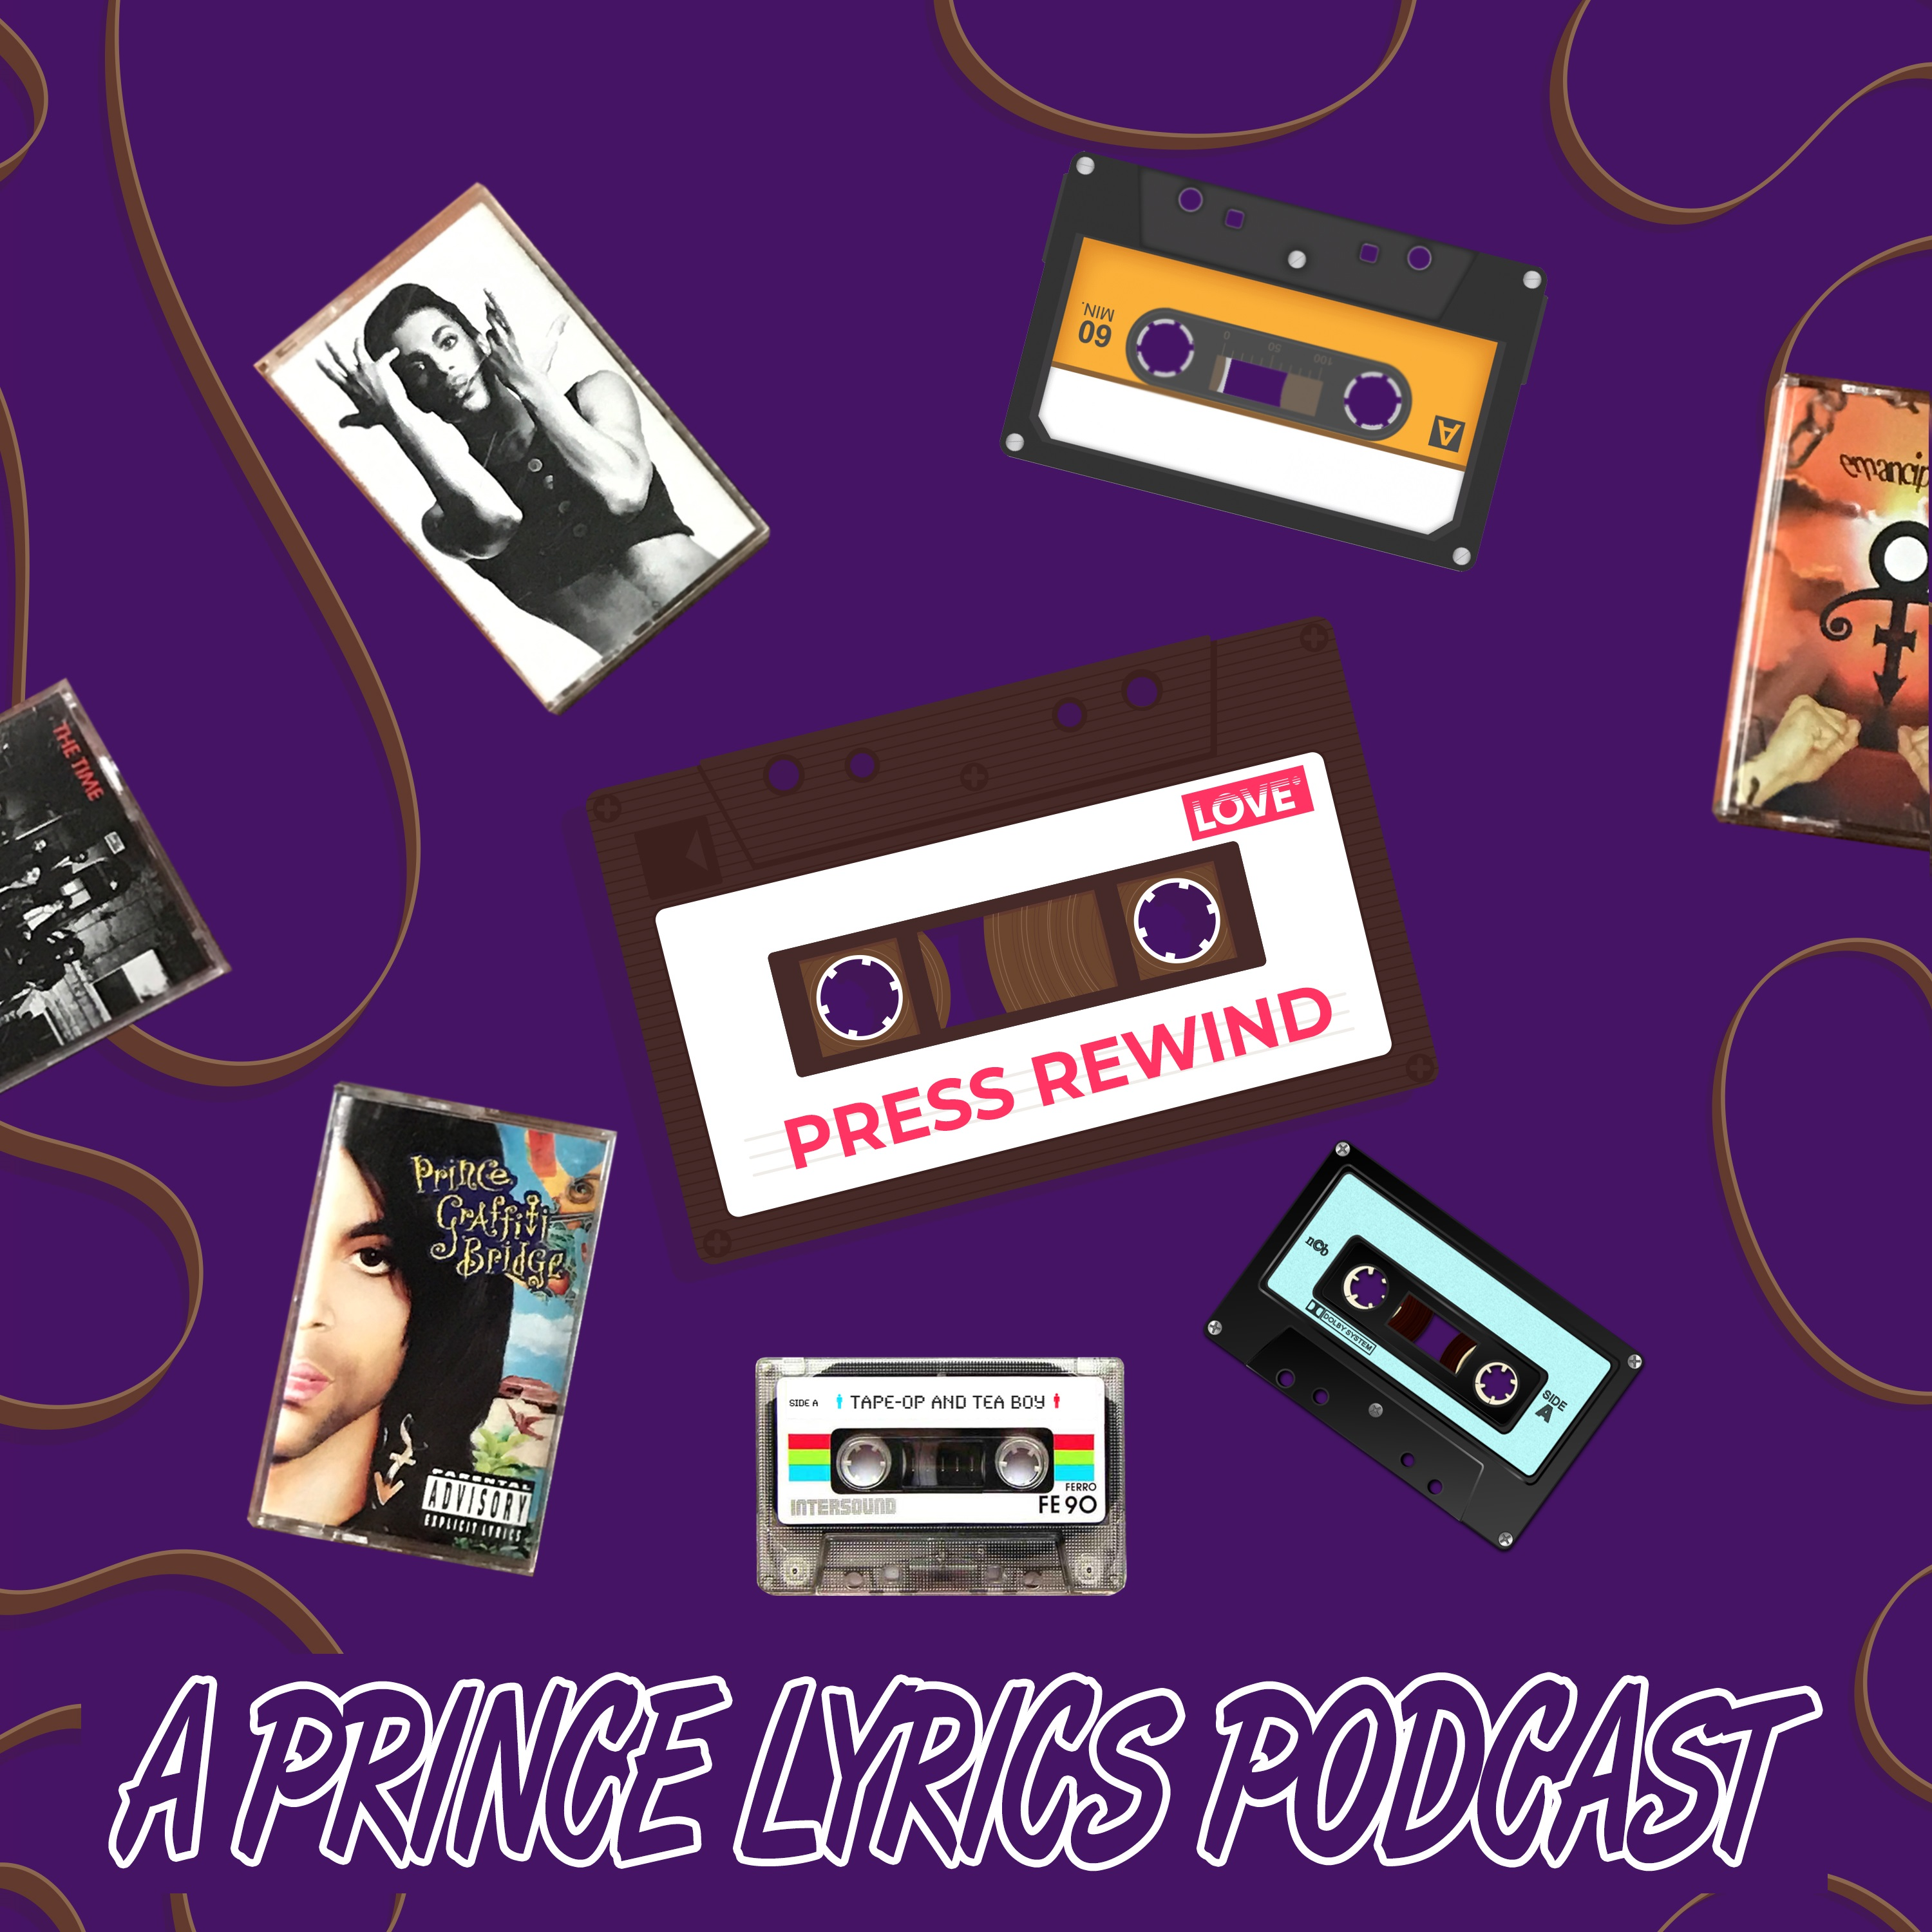 Press Rewind: A Prince Lyrics Podcast